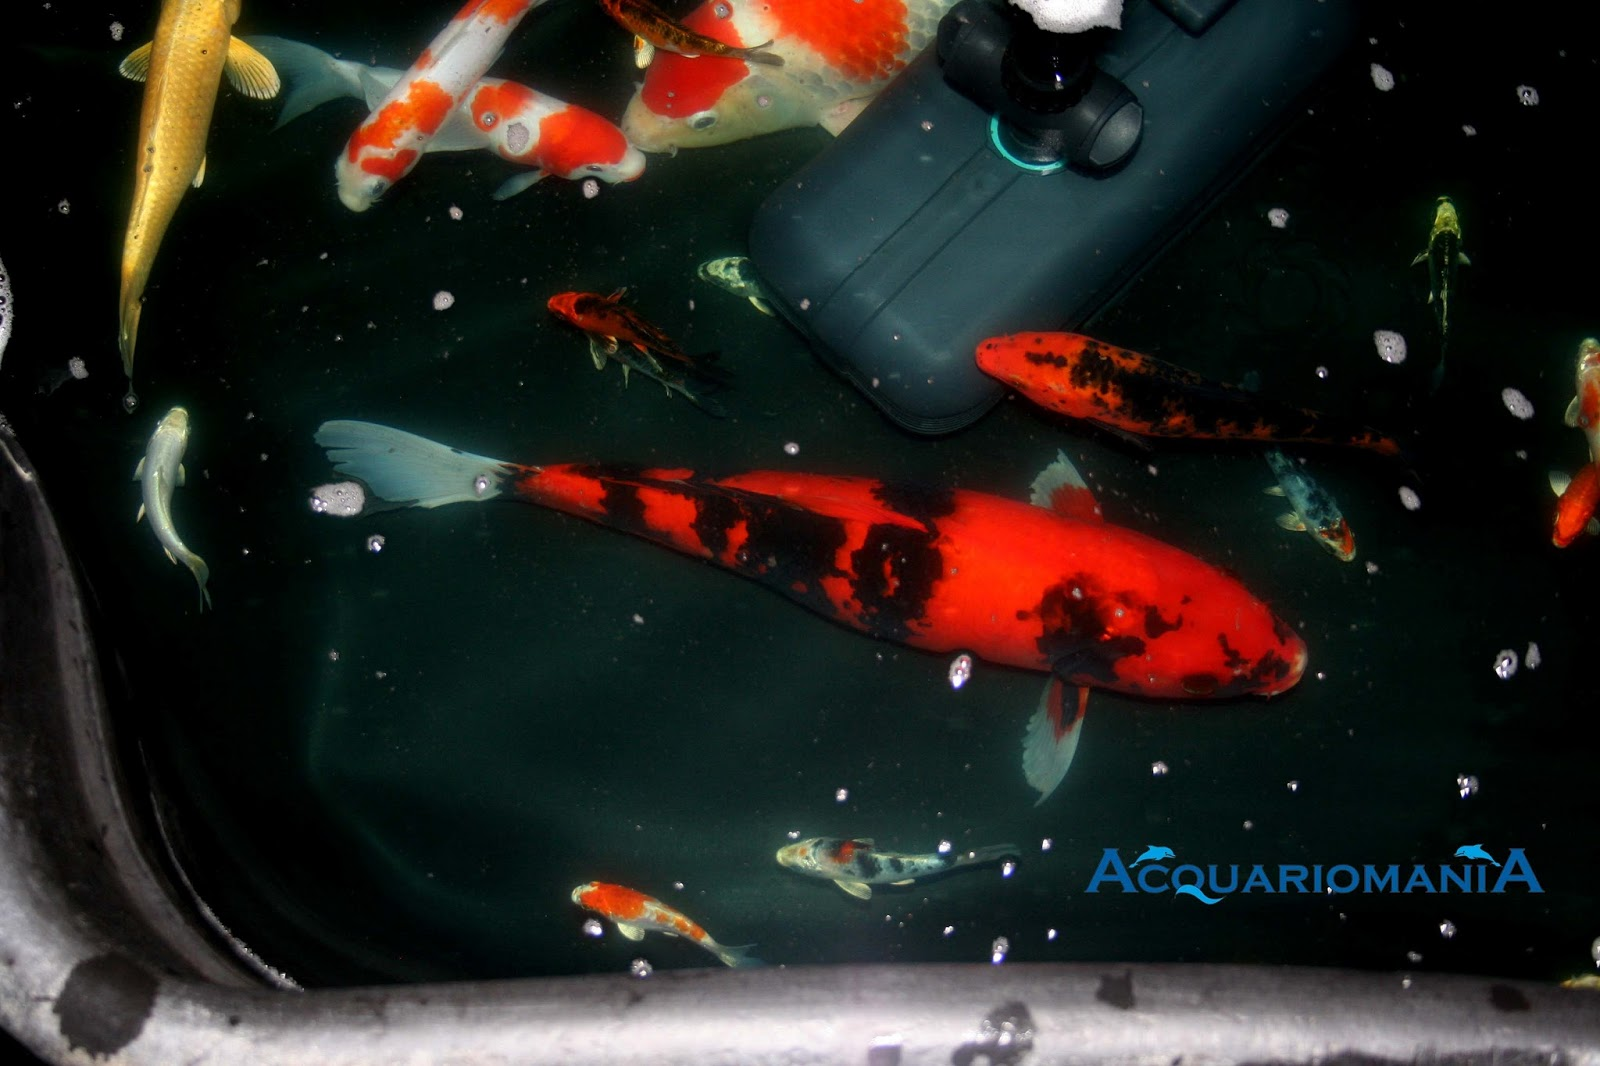 Acquariomania carpe koi for Carpe koi tarif